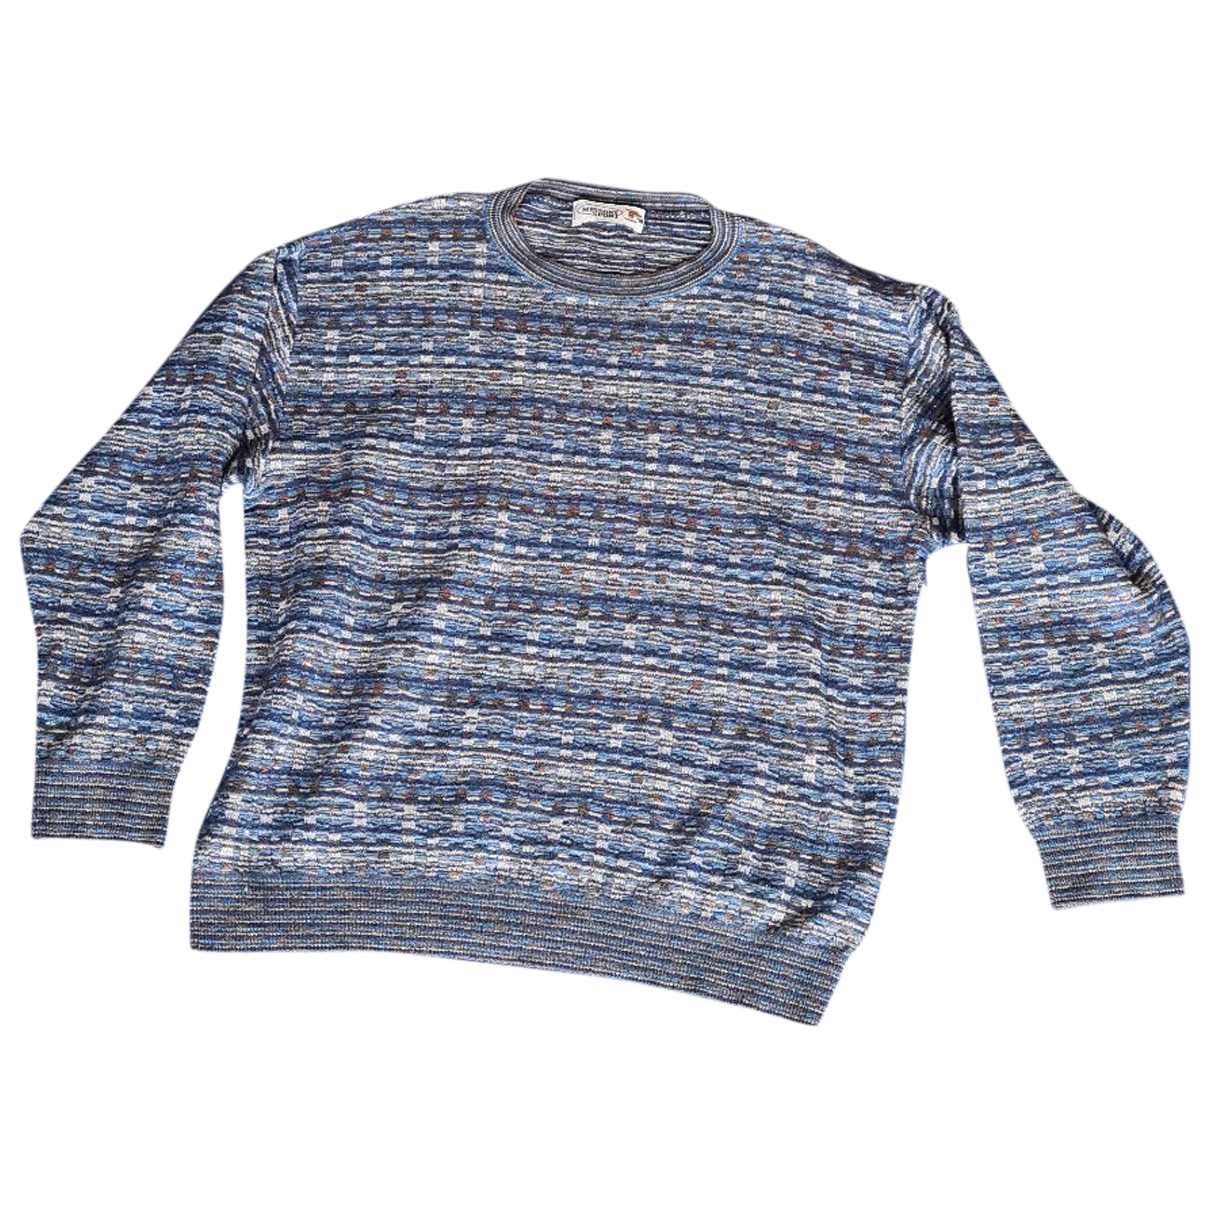 Missoni N Blue Wool Knitwear & Sweatshirts for Men 52 IT